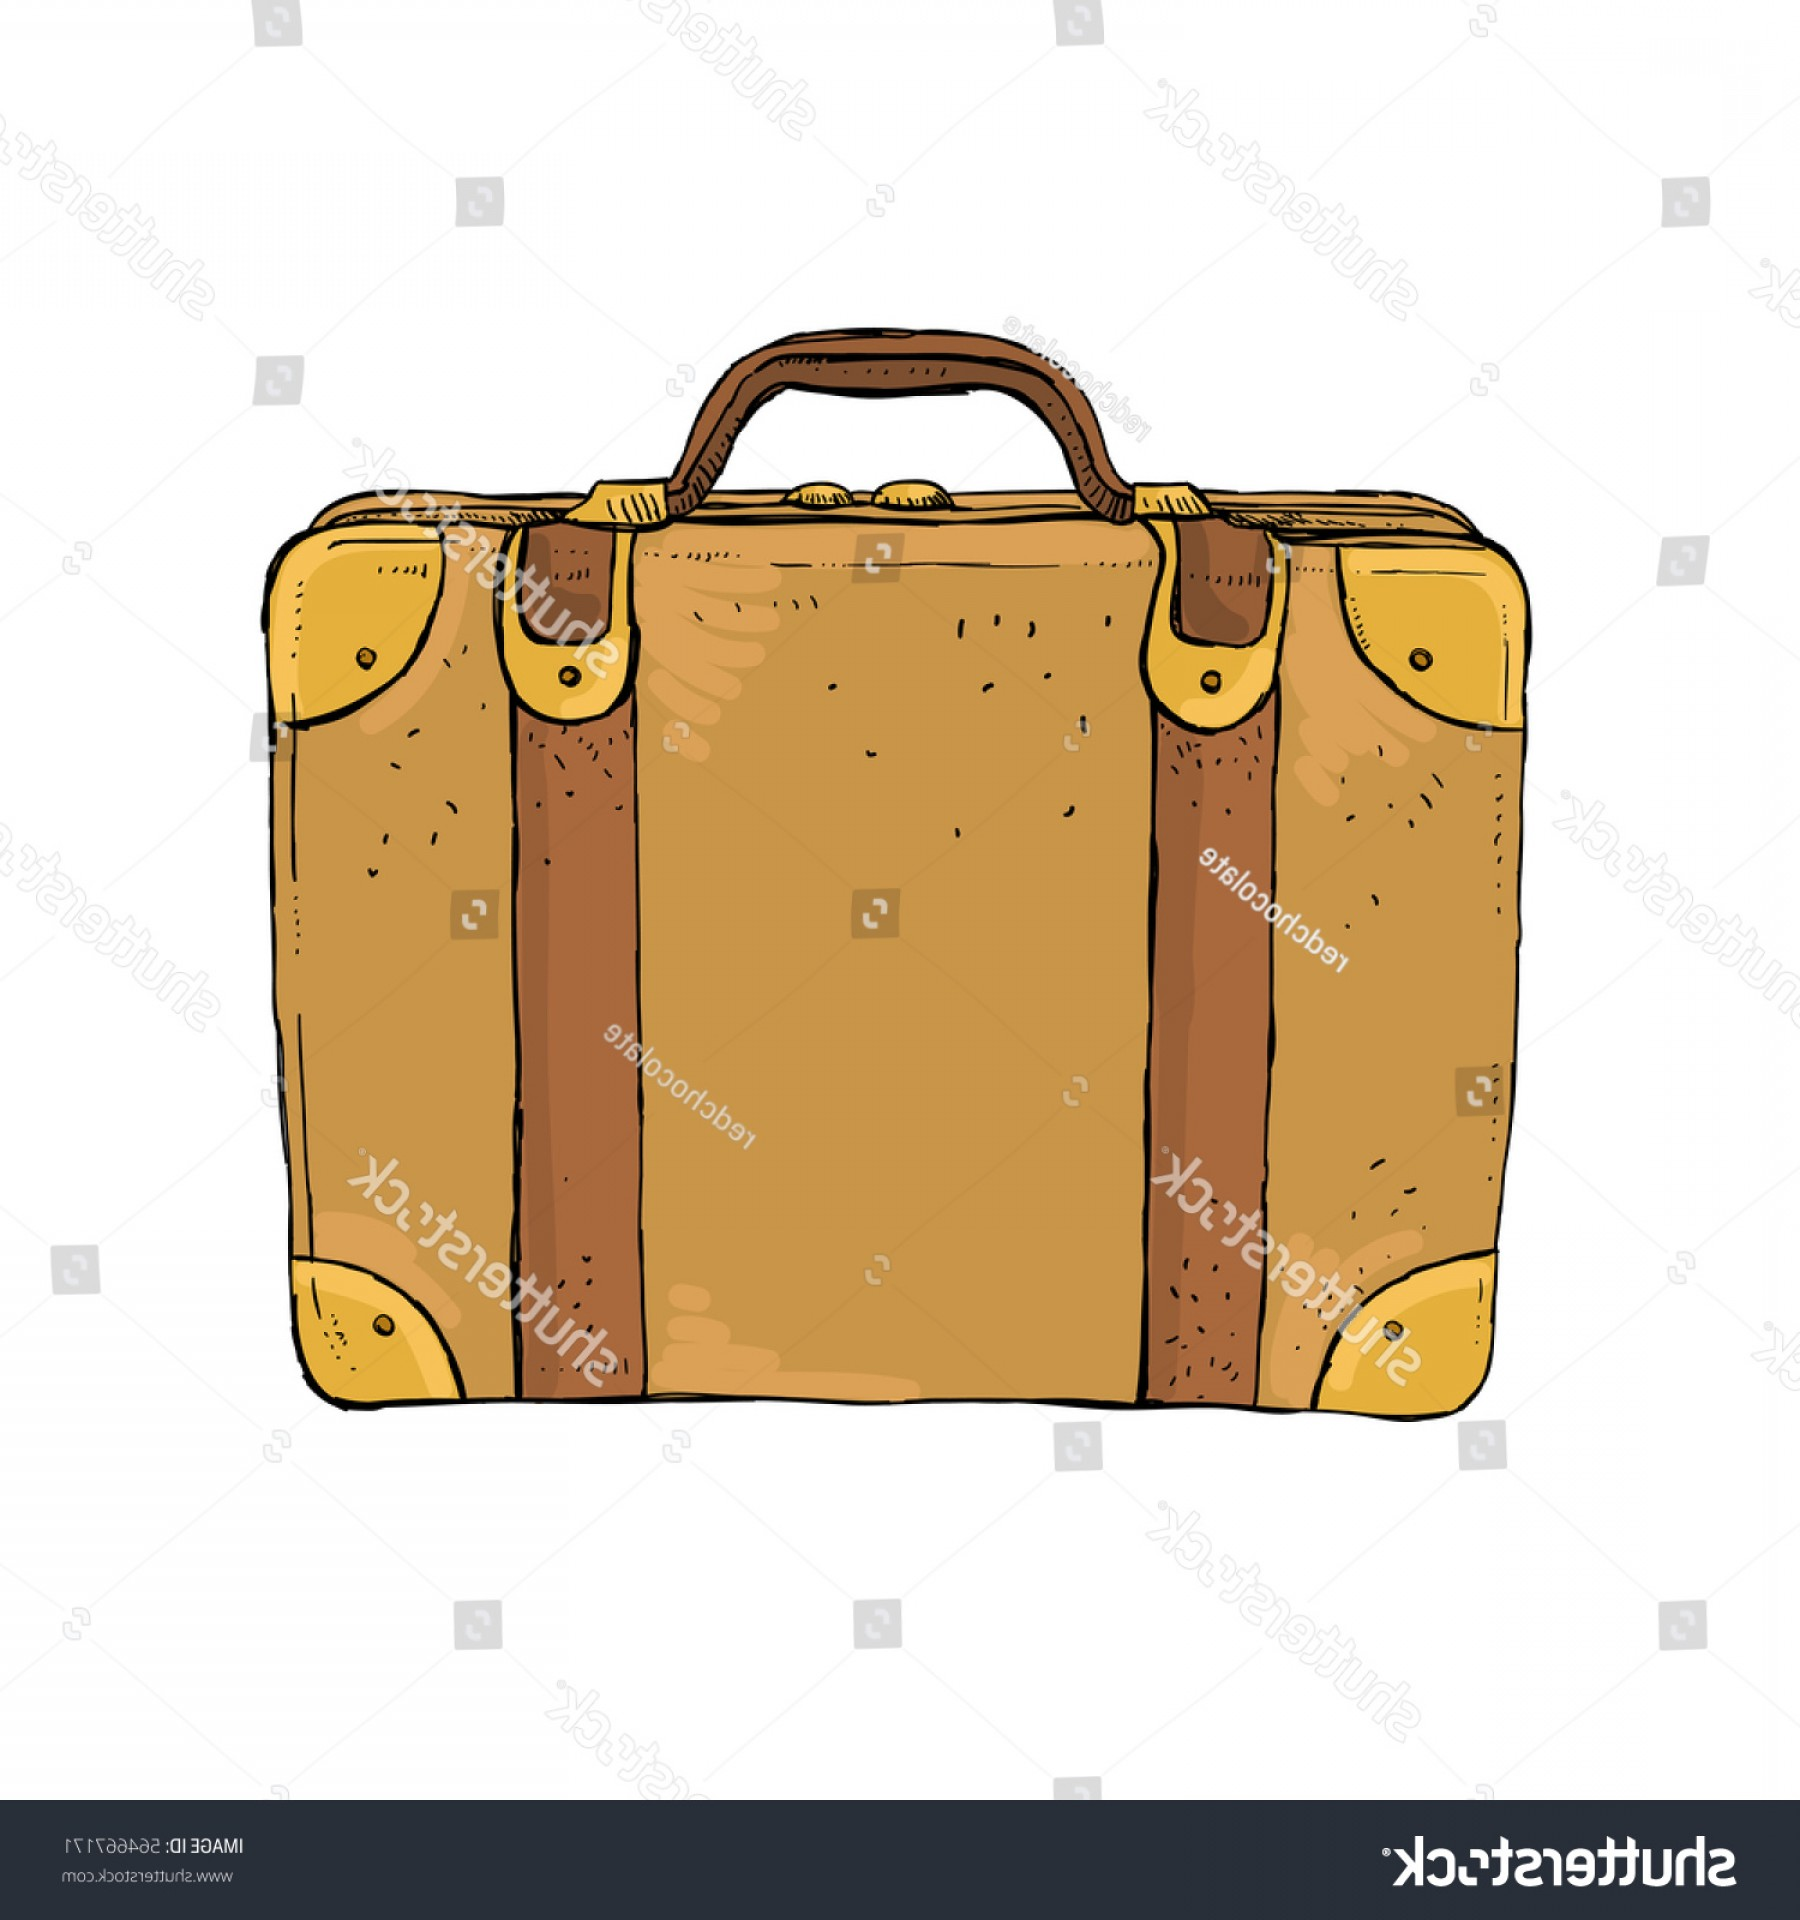 Vintage Luggage Vector: Vintage Luggage Suitcase Sketch Illustration Retro